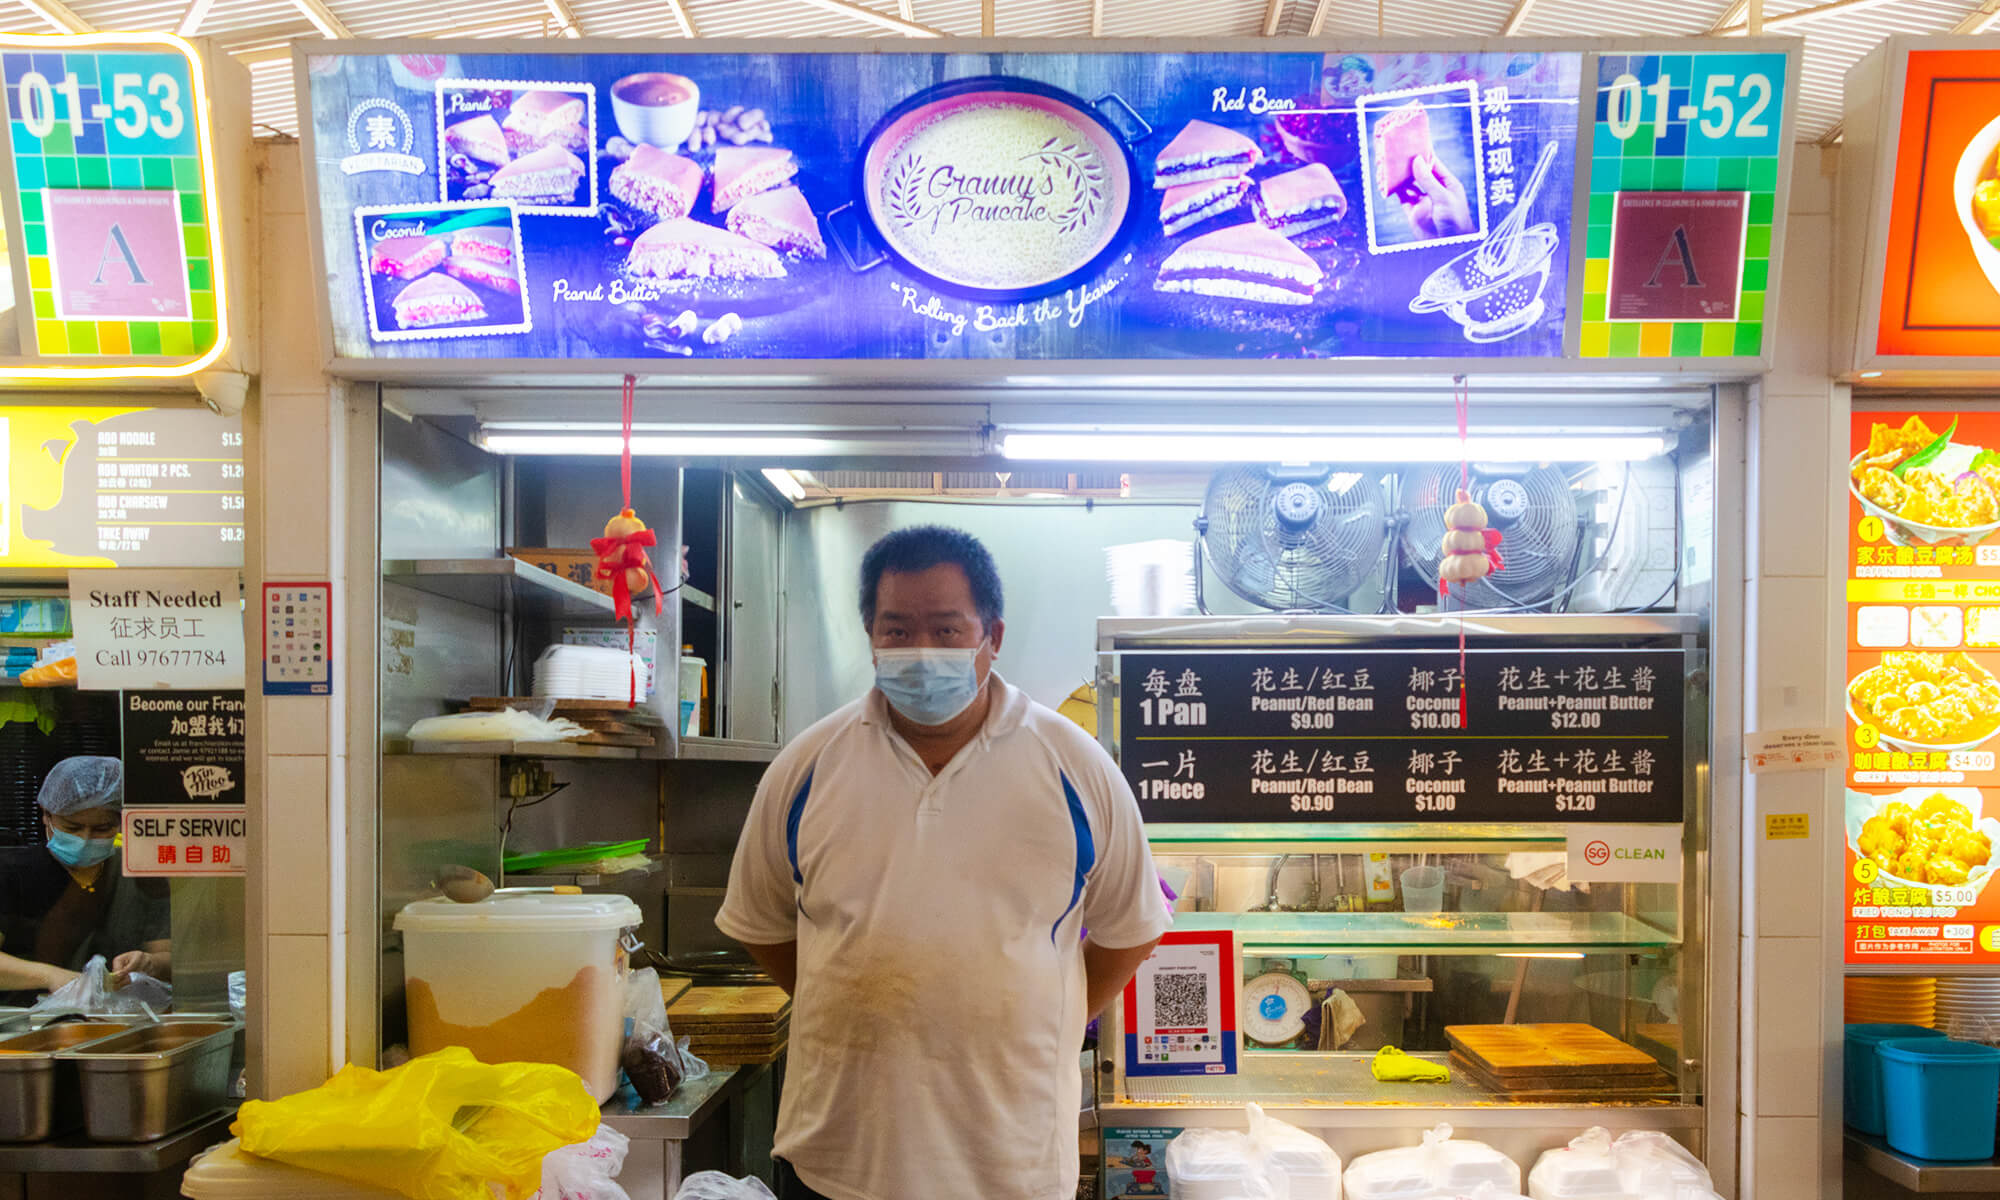 Granny Pancake Hawker Owner at Ghim Moh Food Centre